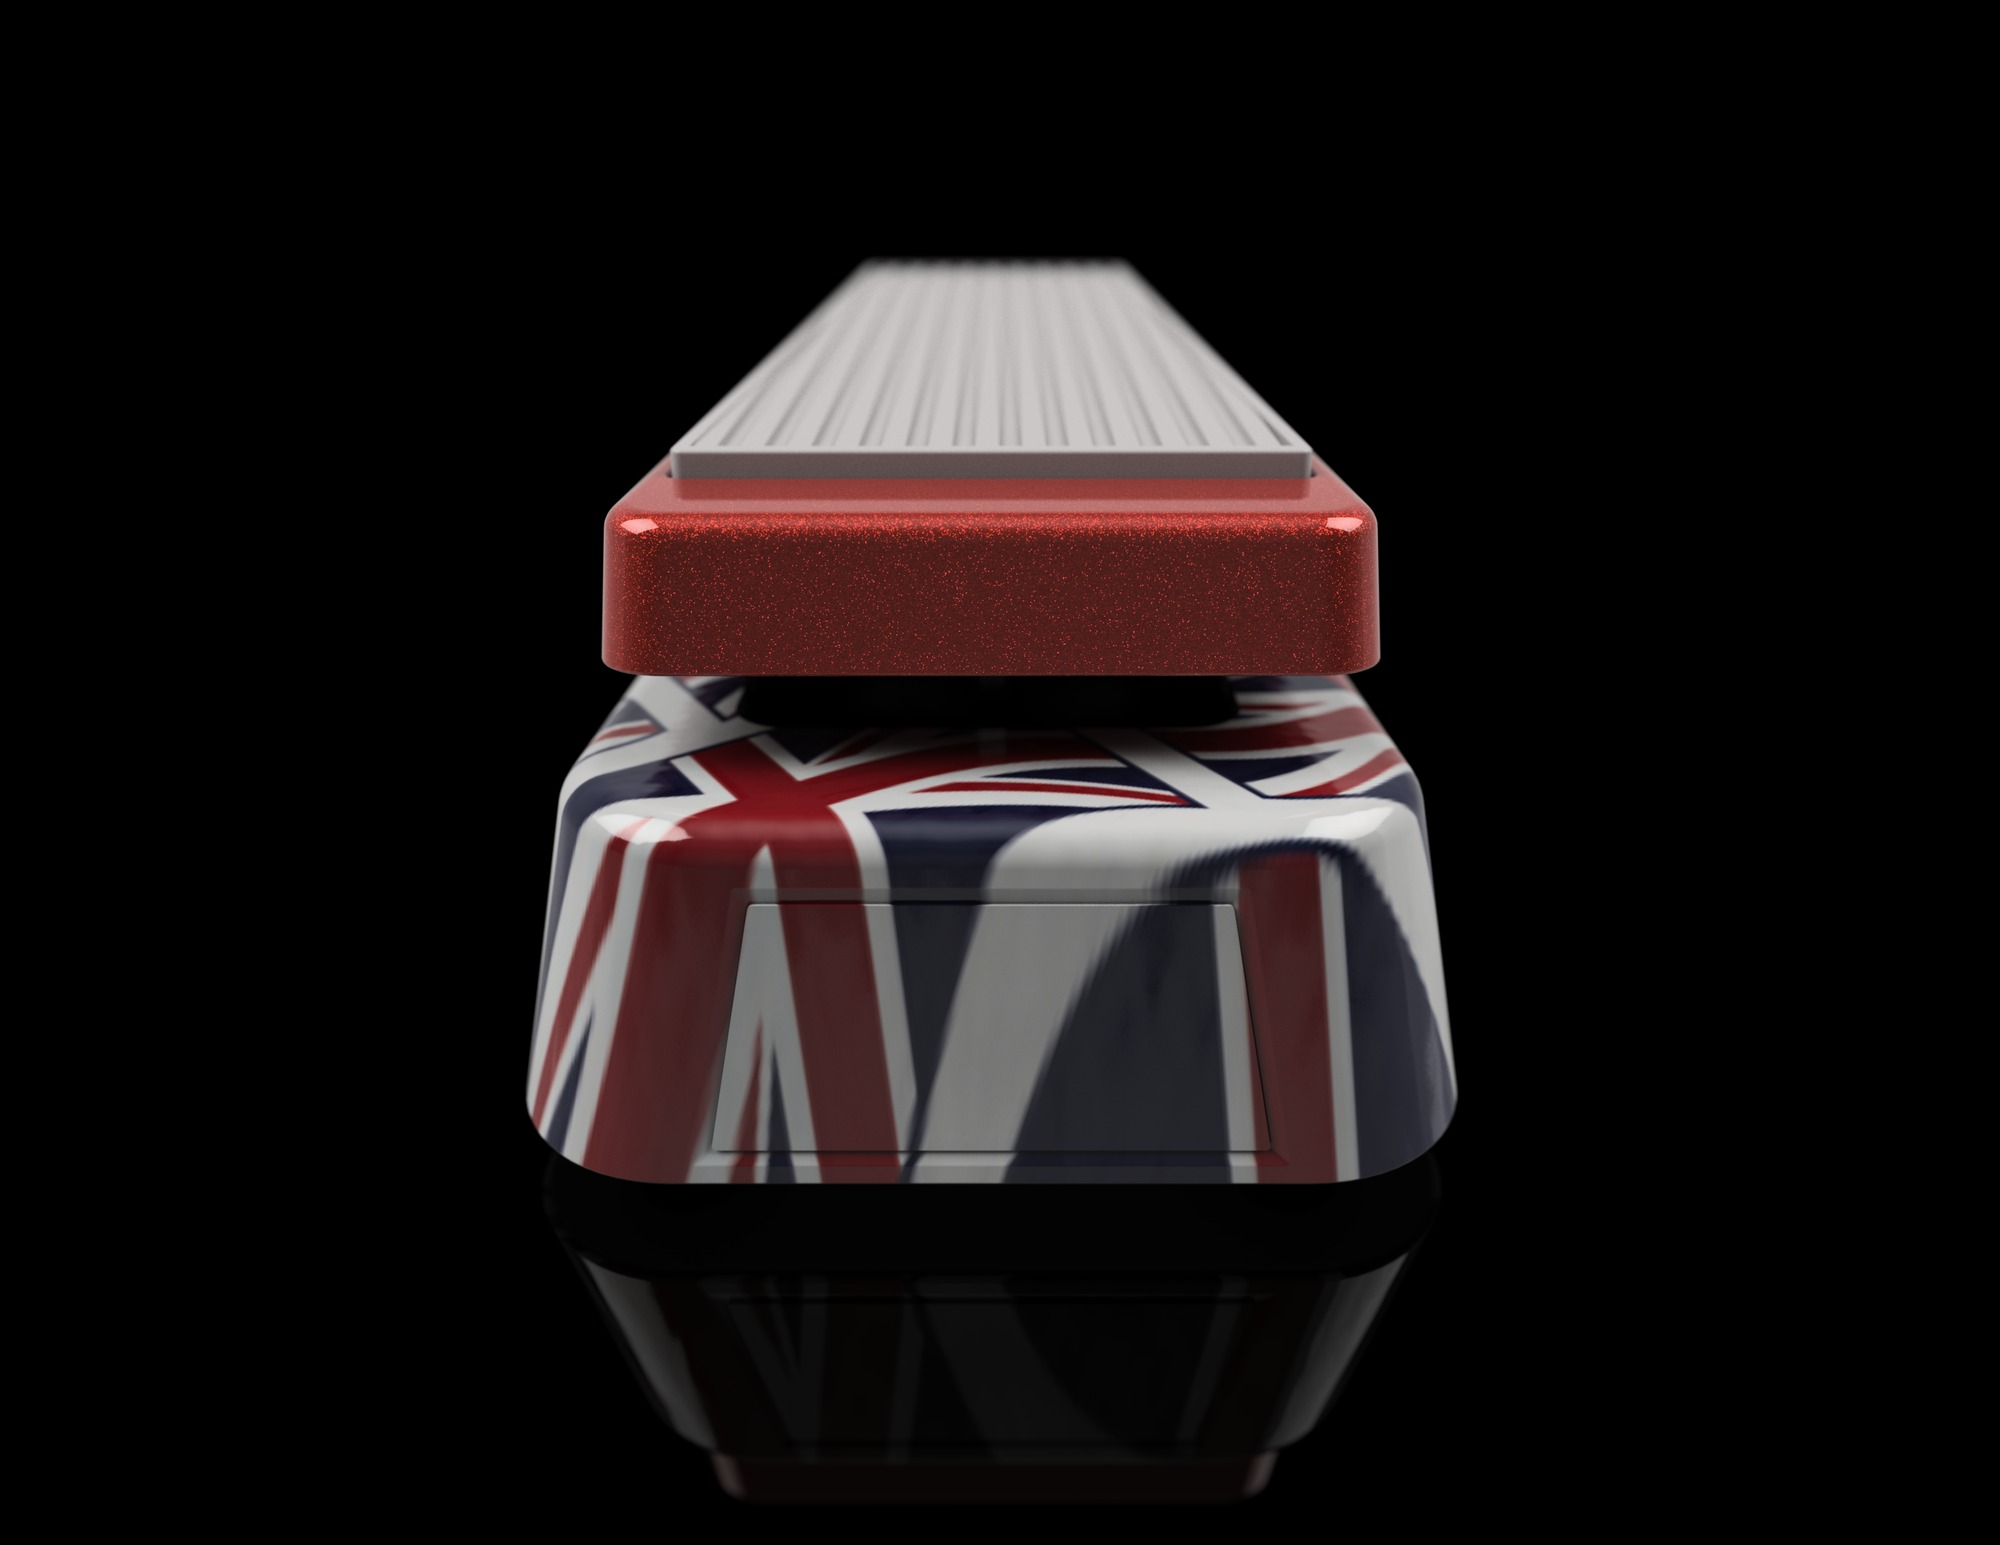 Union_jack_wah_2015-may-12_01-52-55pm-000_customizedview55482768